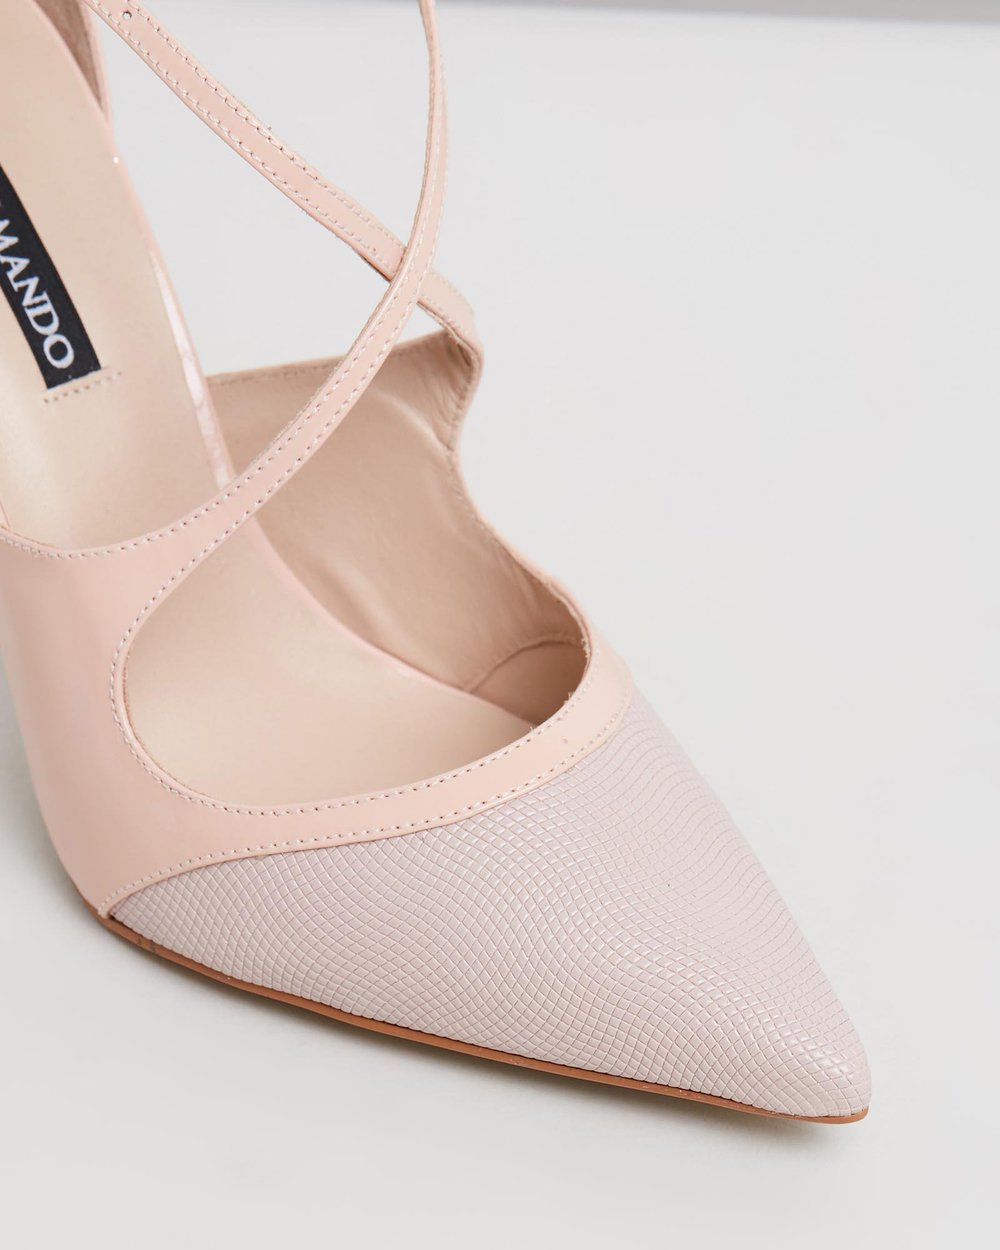 online newest style of many choices of Charlene - Nude